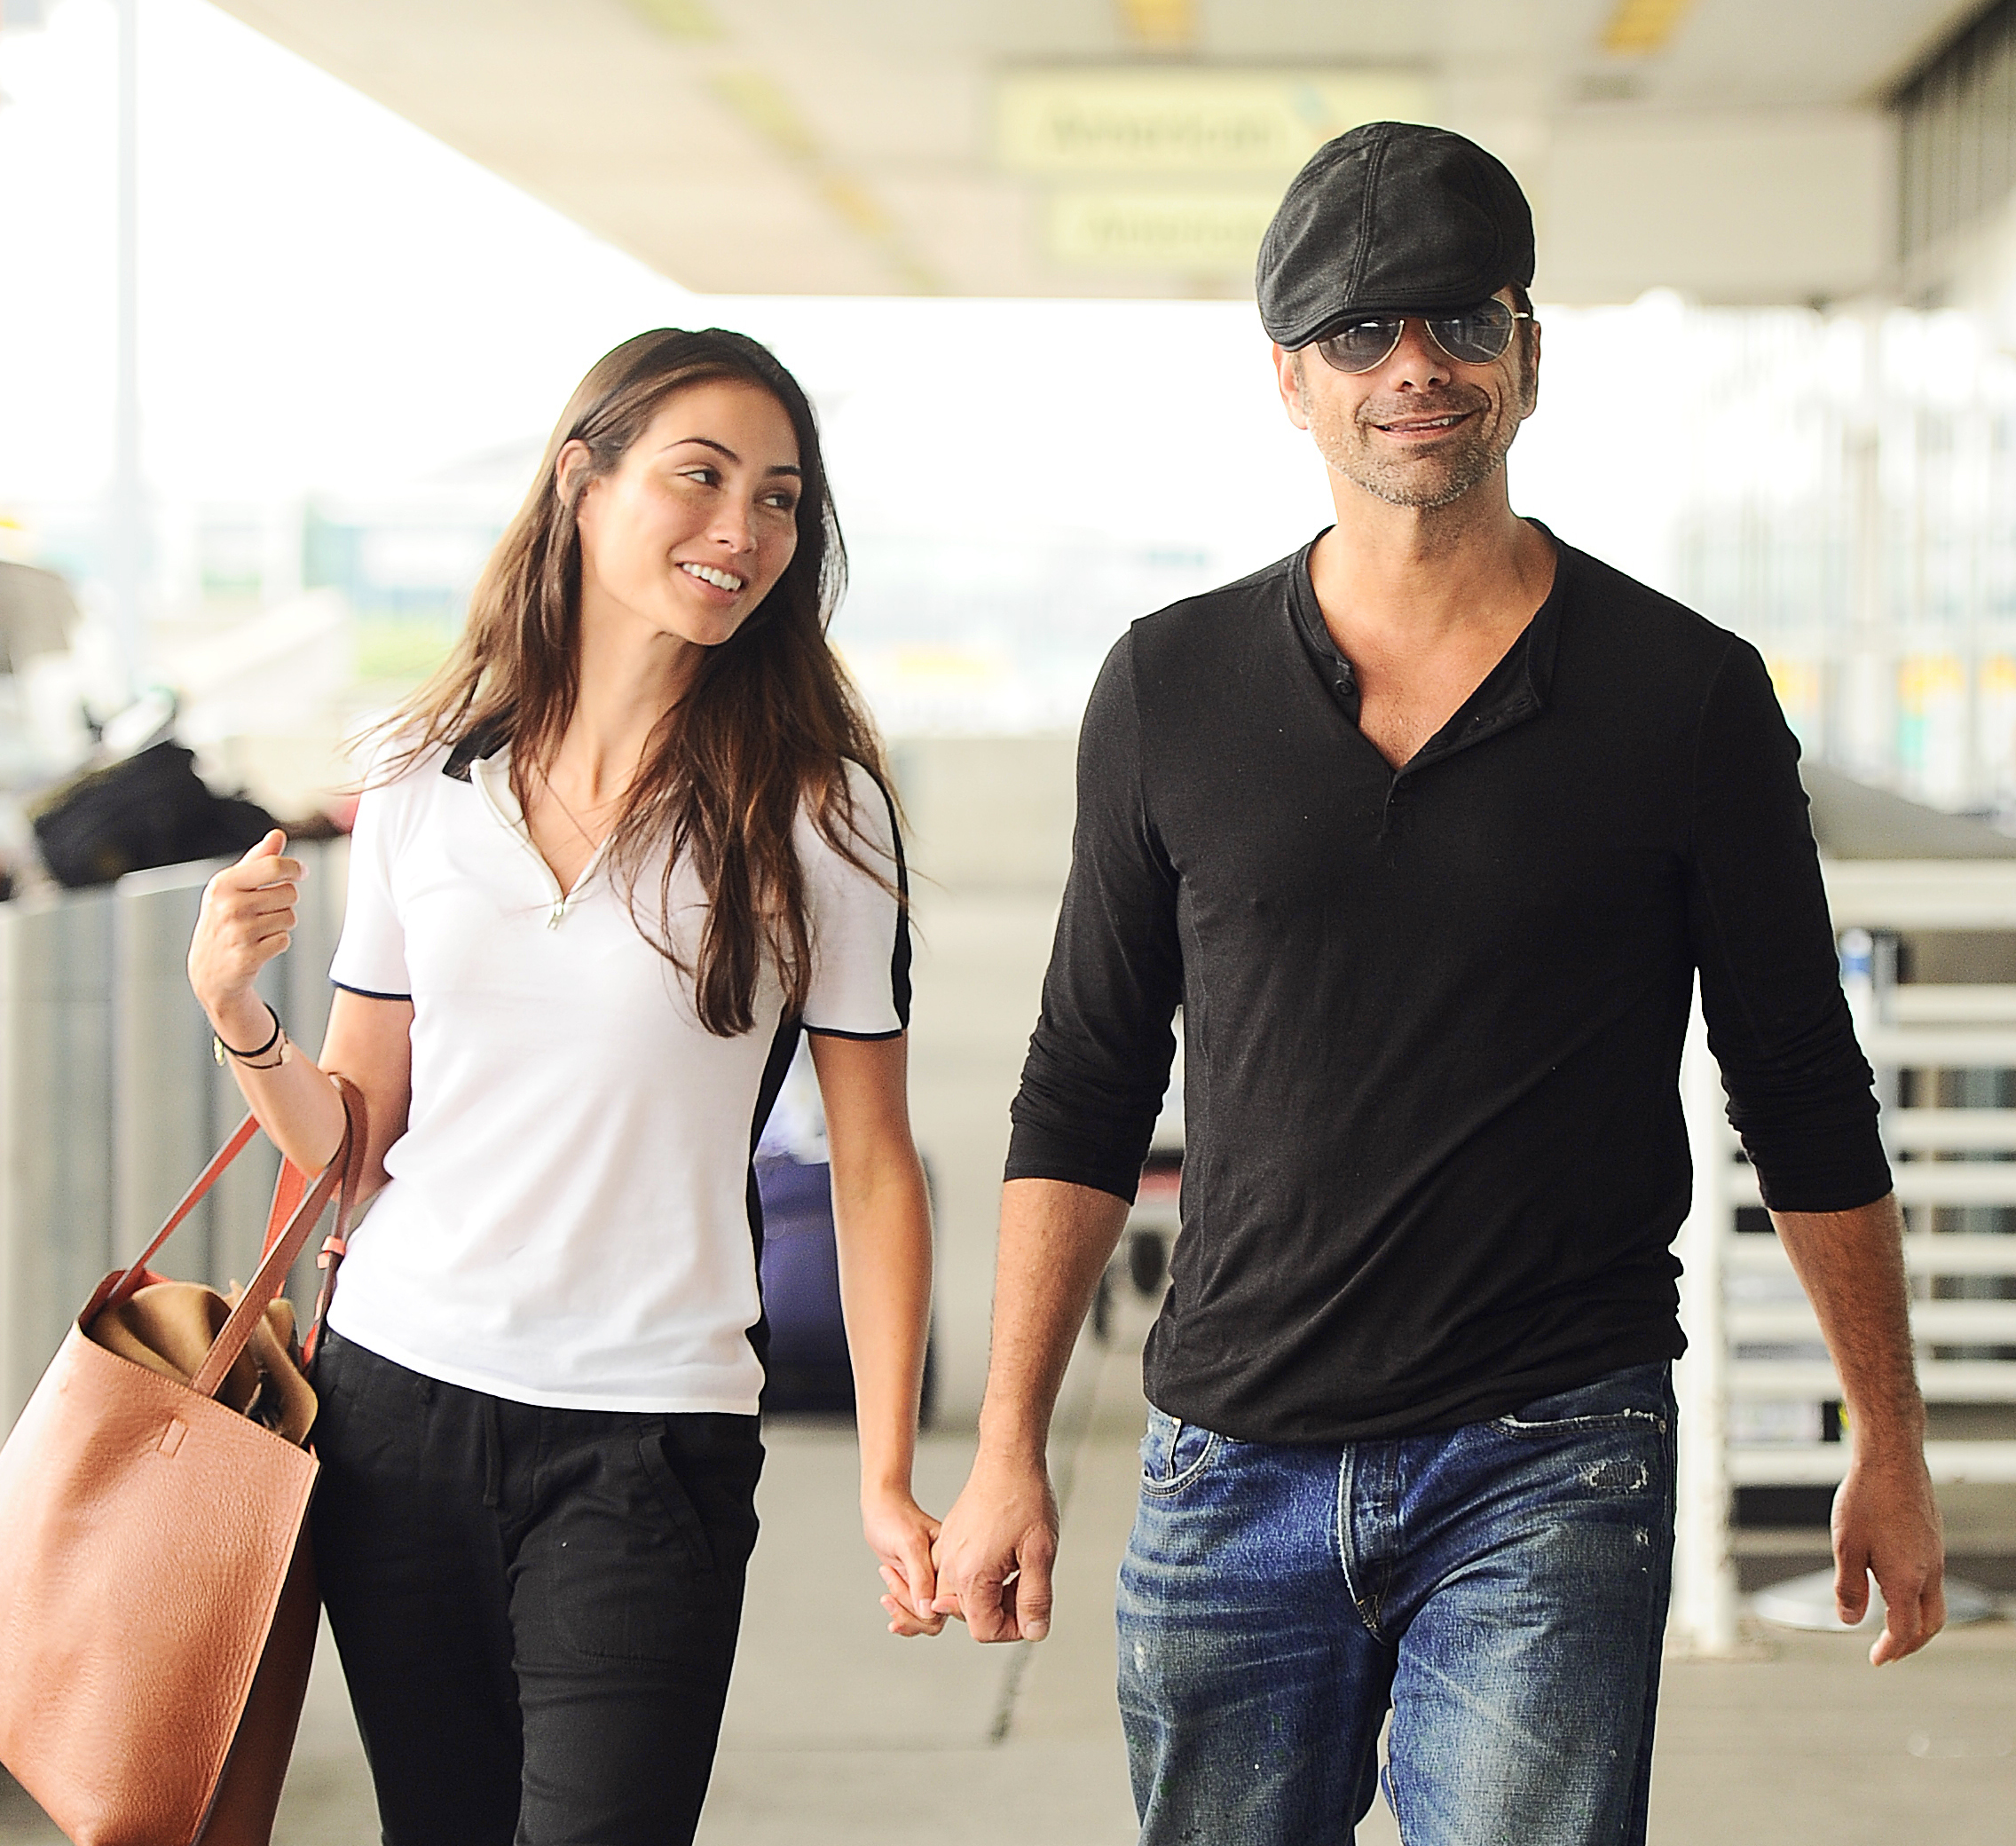 John Stamos proposes to Caitlin McHugh: All the details